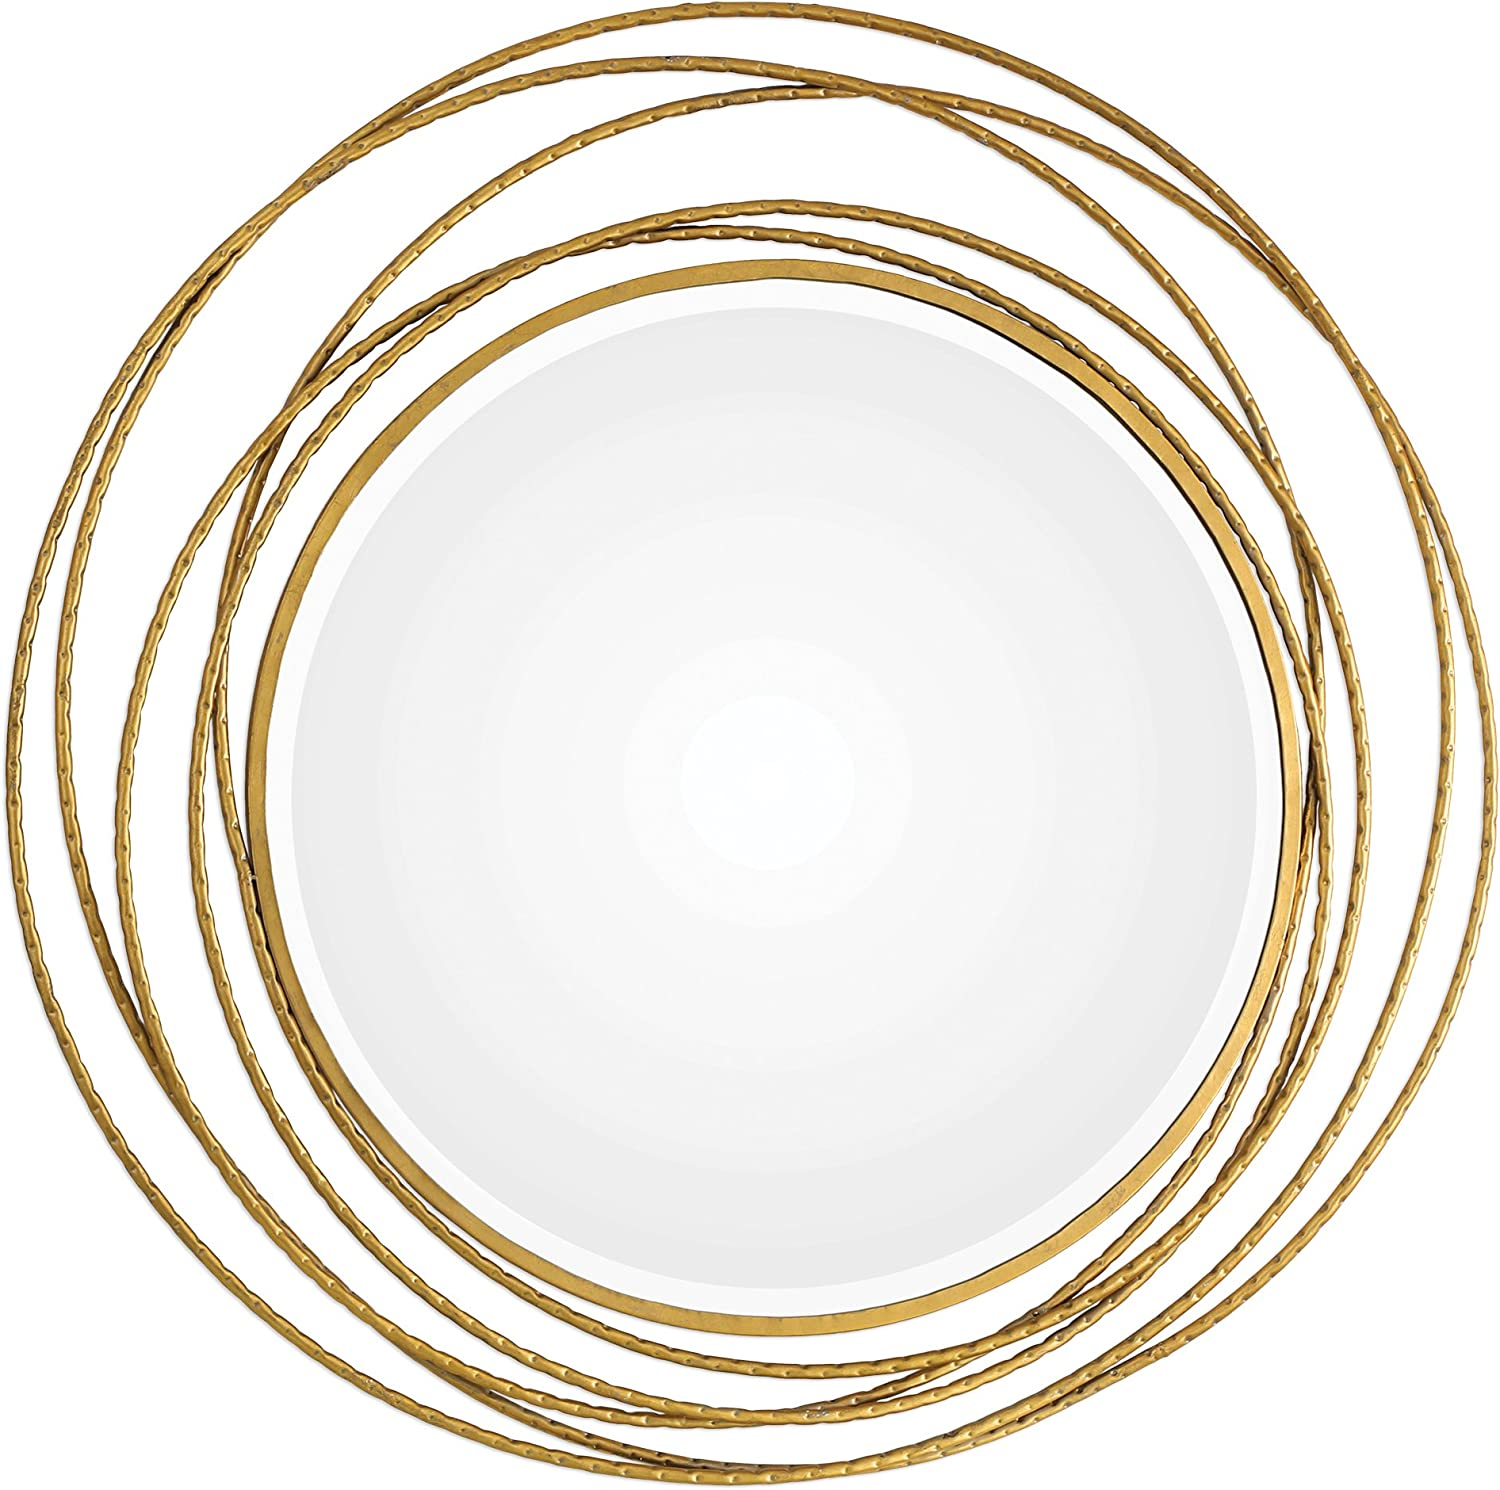 Amazon Com My Swanky Home Gold Swirl Rings Modern Wall Mirror 39 Round Abstract Open Mid Century Metal Home Kitchen